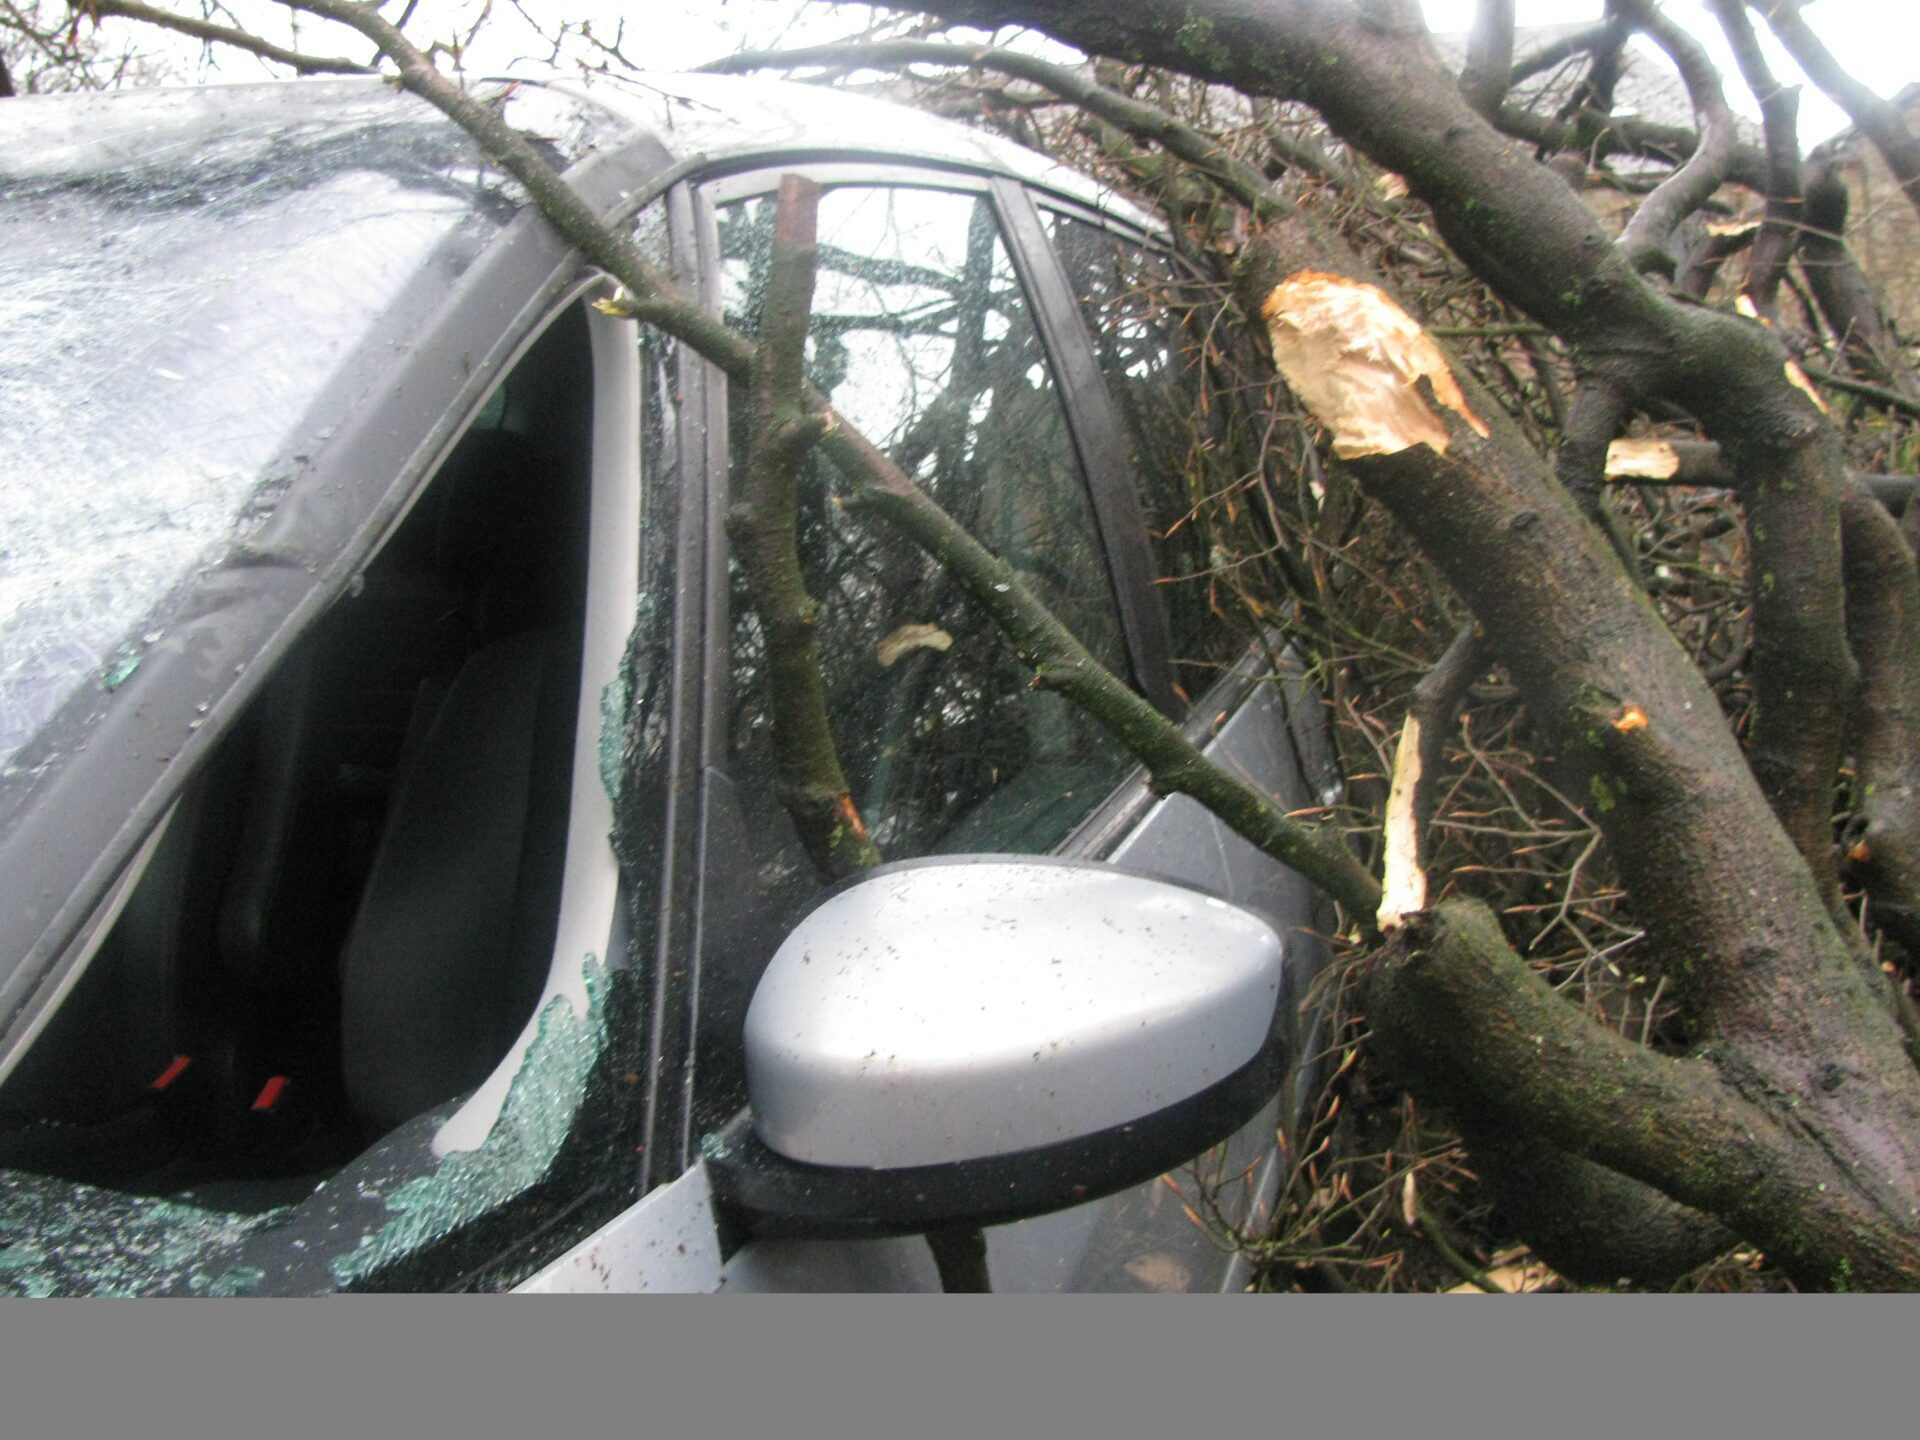 Jimmy Cricket's car was damaged by a falling tree